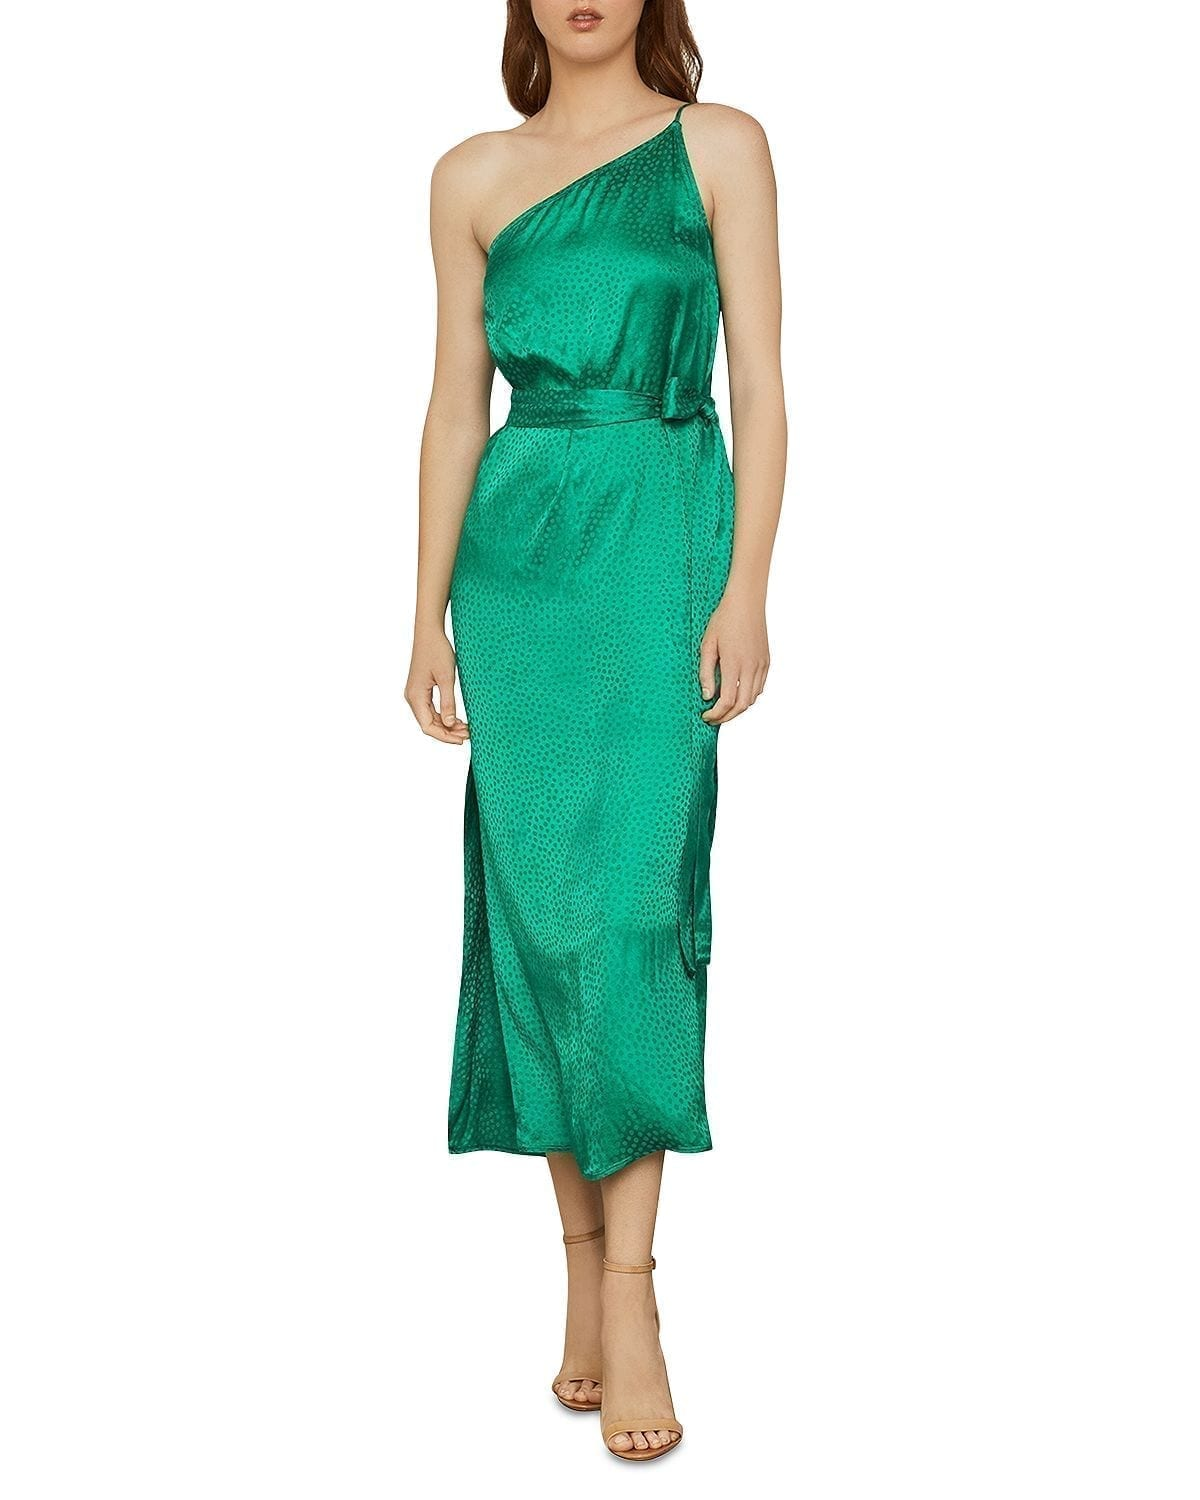 BCBGMAXAZRIA One-Shoulder Satin Dress